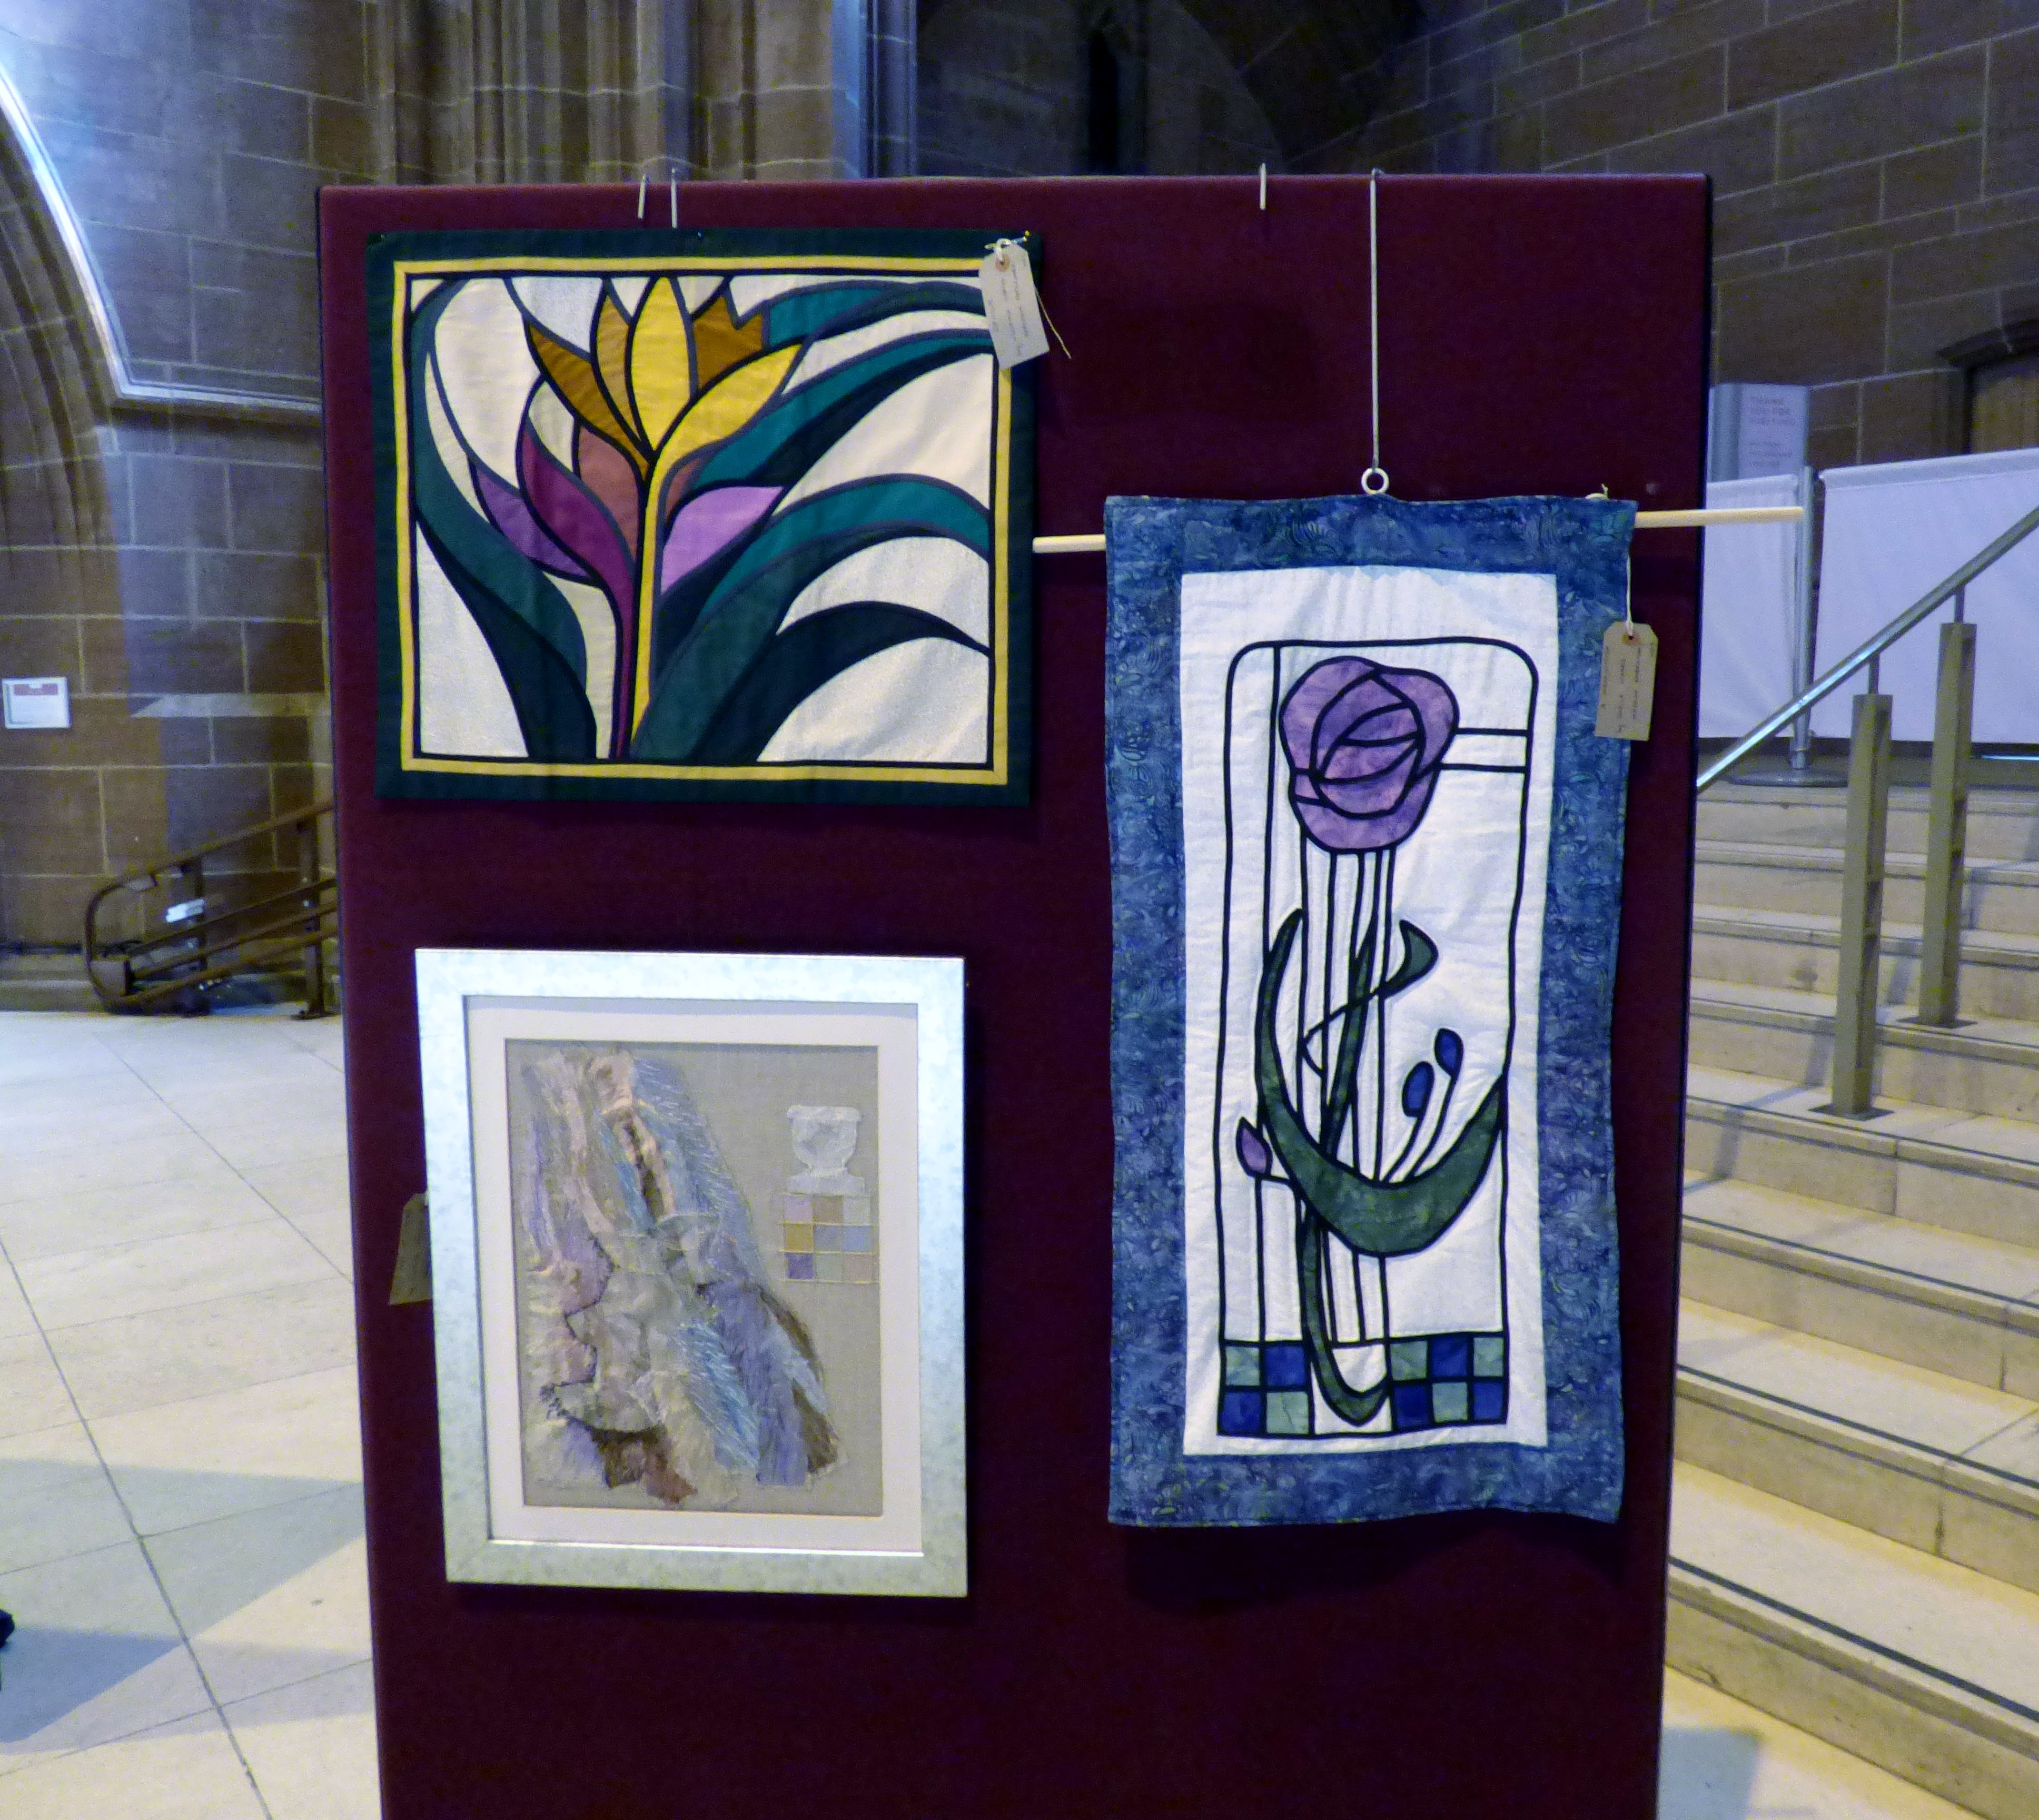 CROCUS by Norma Heron, A MACKINTOSH by Sheila Morris and FISH OUT OF WATER by Norma Heron at 60 Glorious Years exhibition 2016